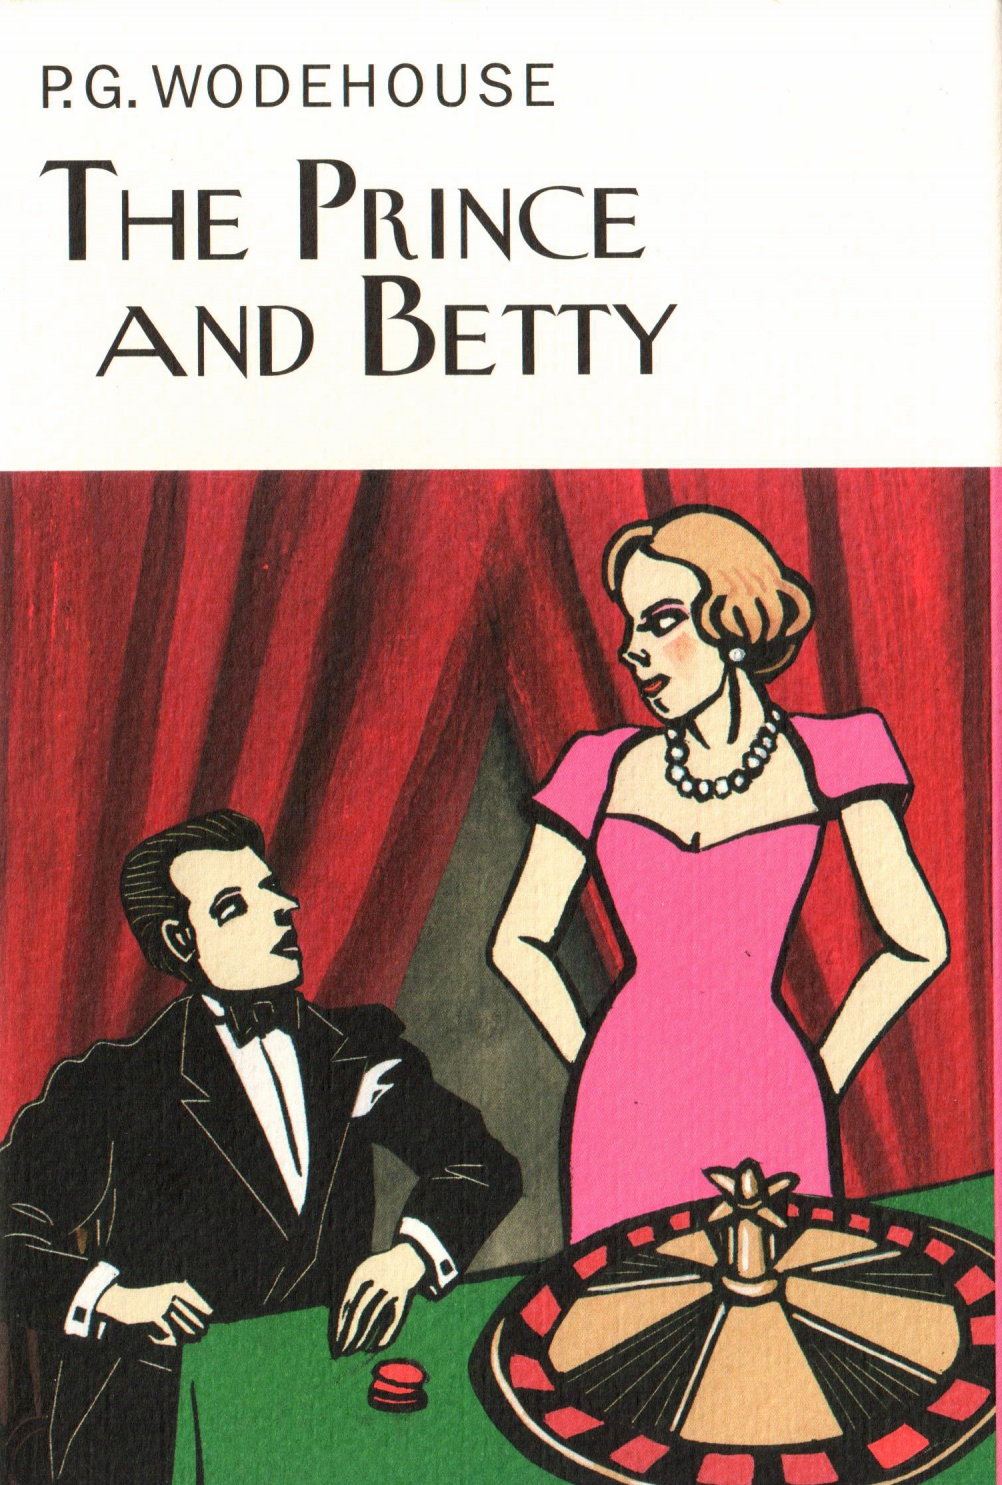 99 The Prince and Betty